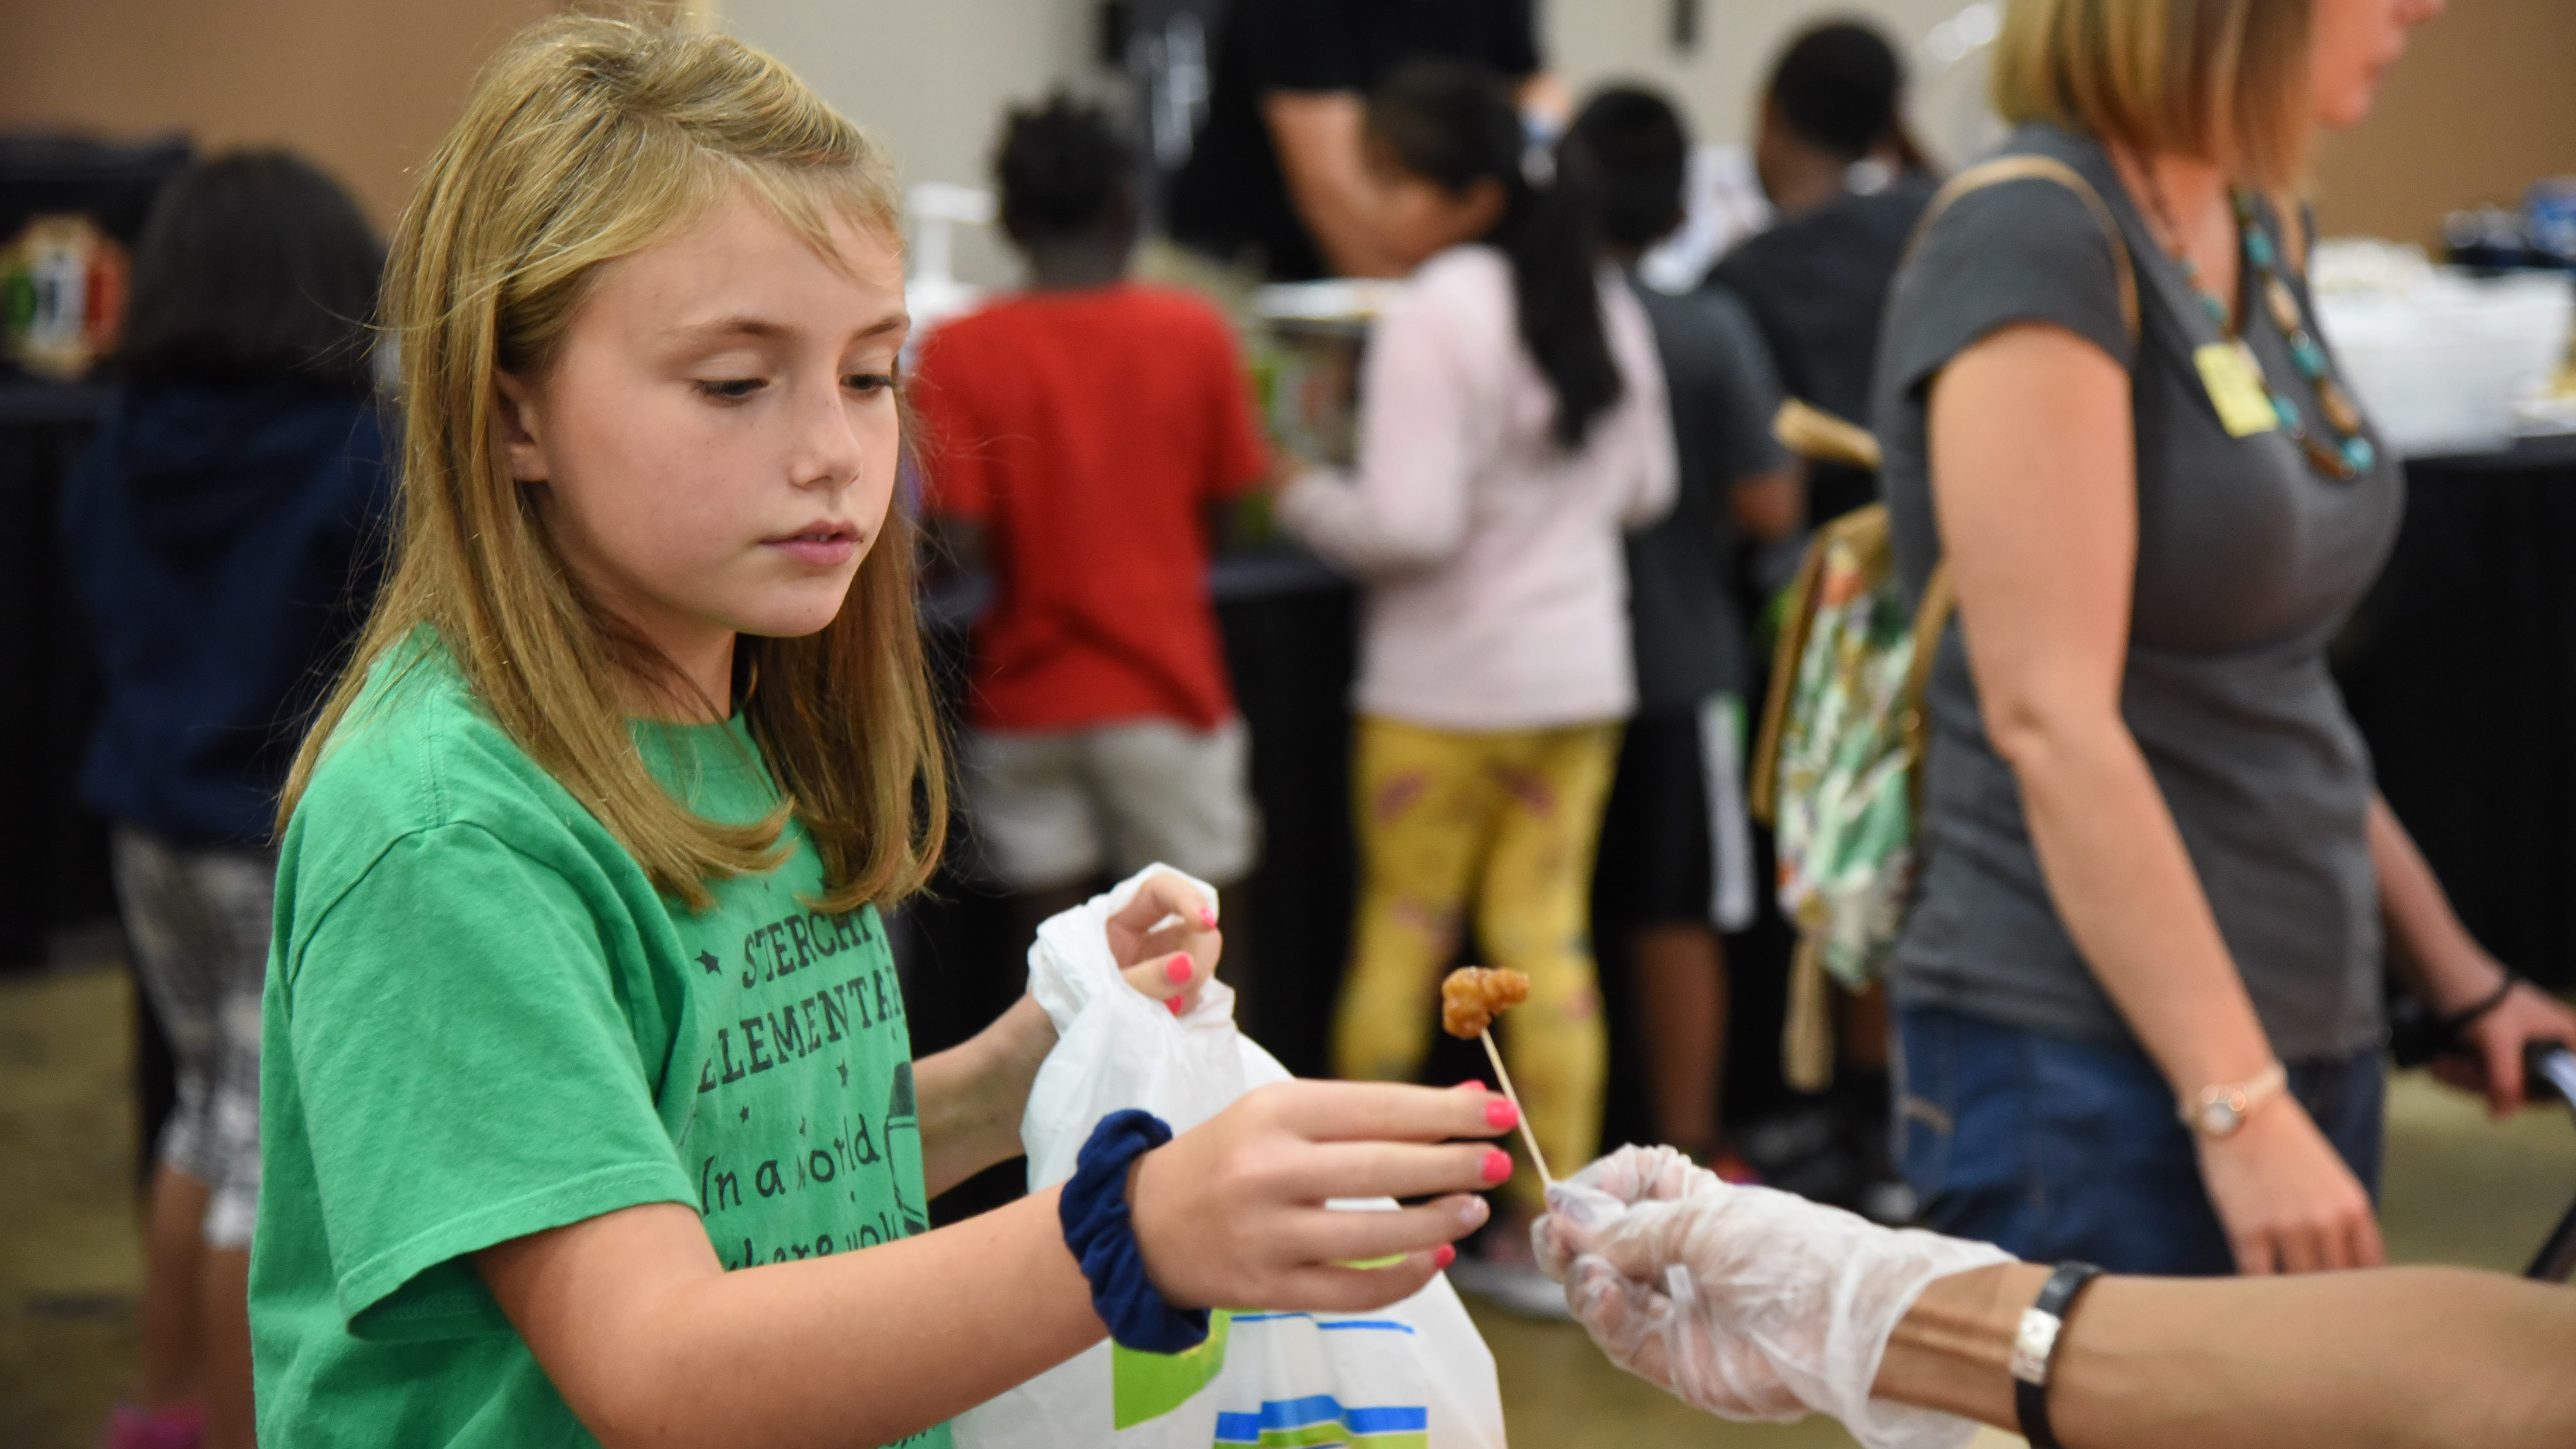 Pyper Clevinger, a 4th-grader at Sterchi Elementary, samples a bite of Tangerine Chicken at the KCS Food Show on Sept. 12, 2019.